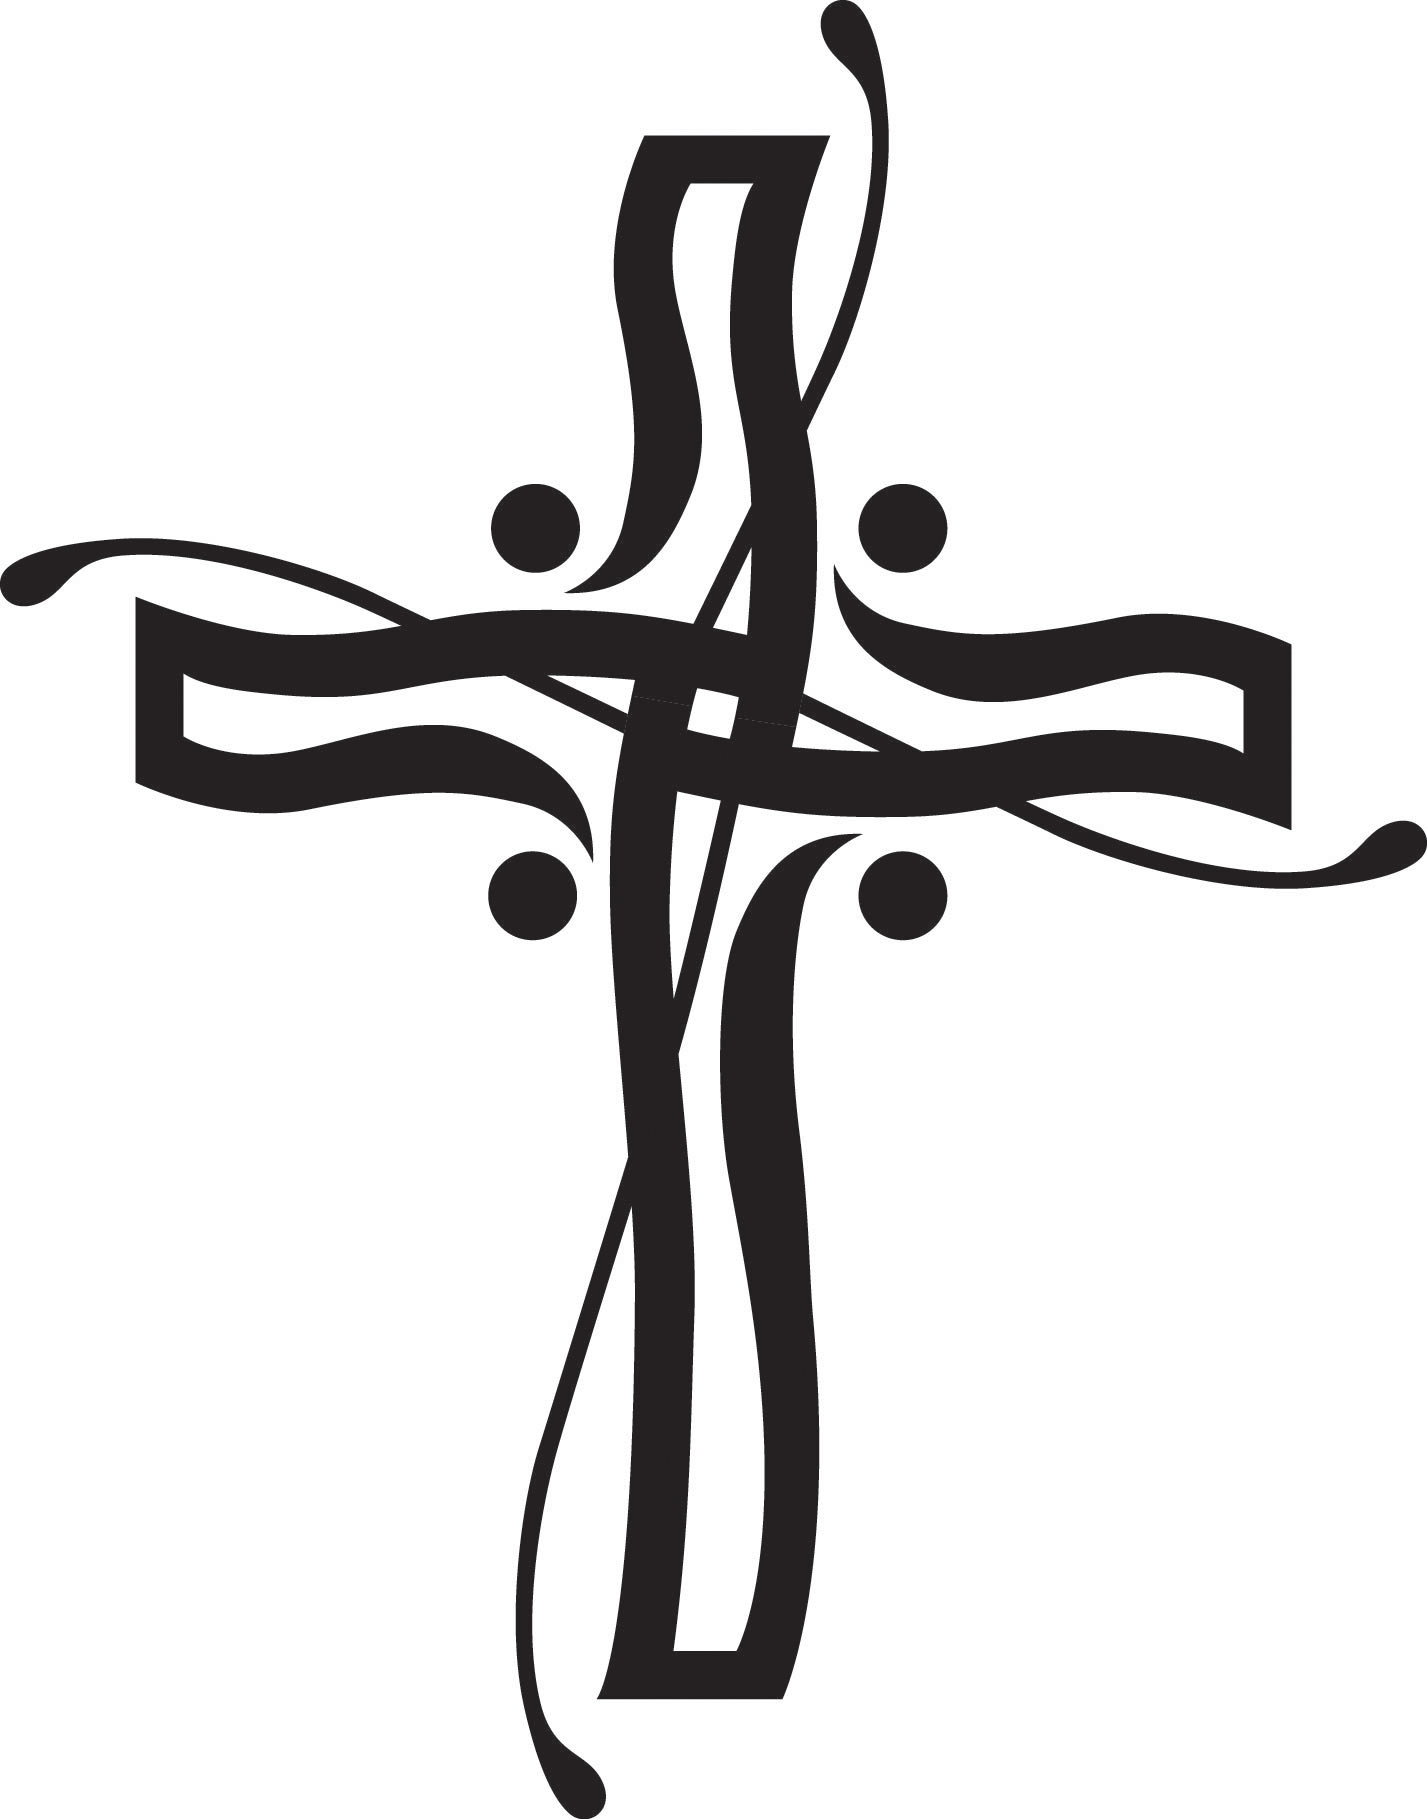 Free christian cliparts download. Funeral clipart symbol catholic